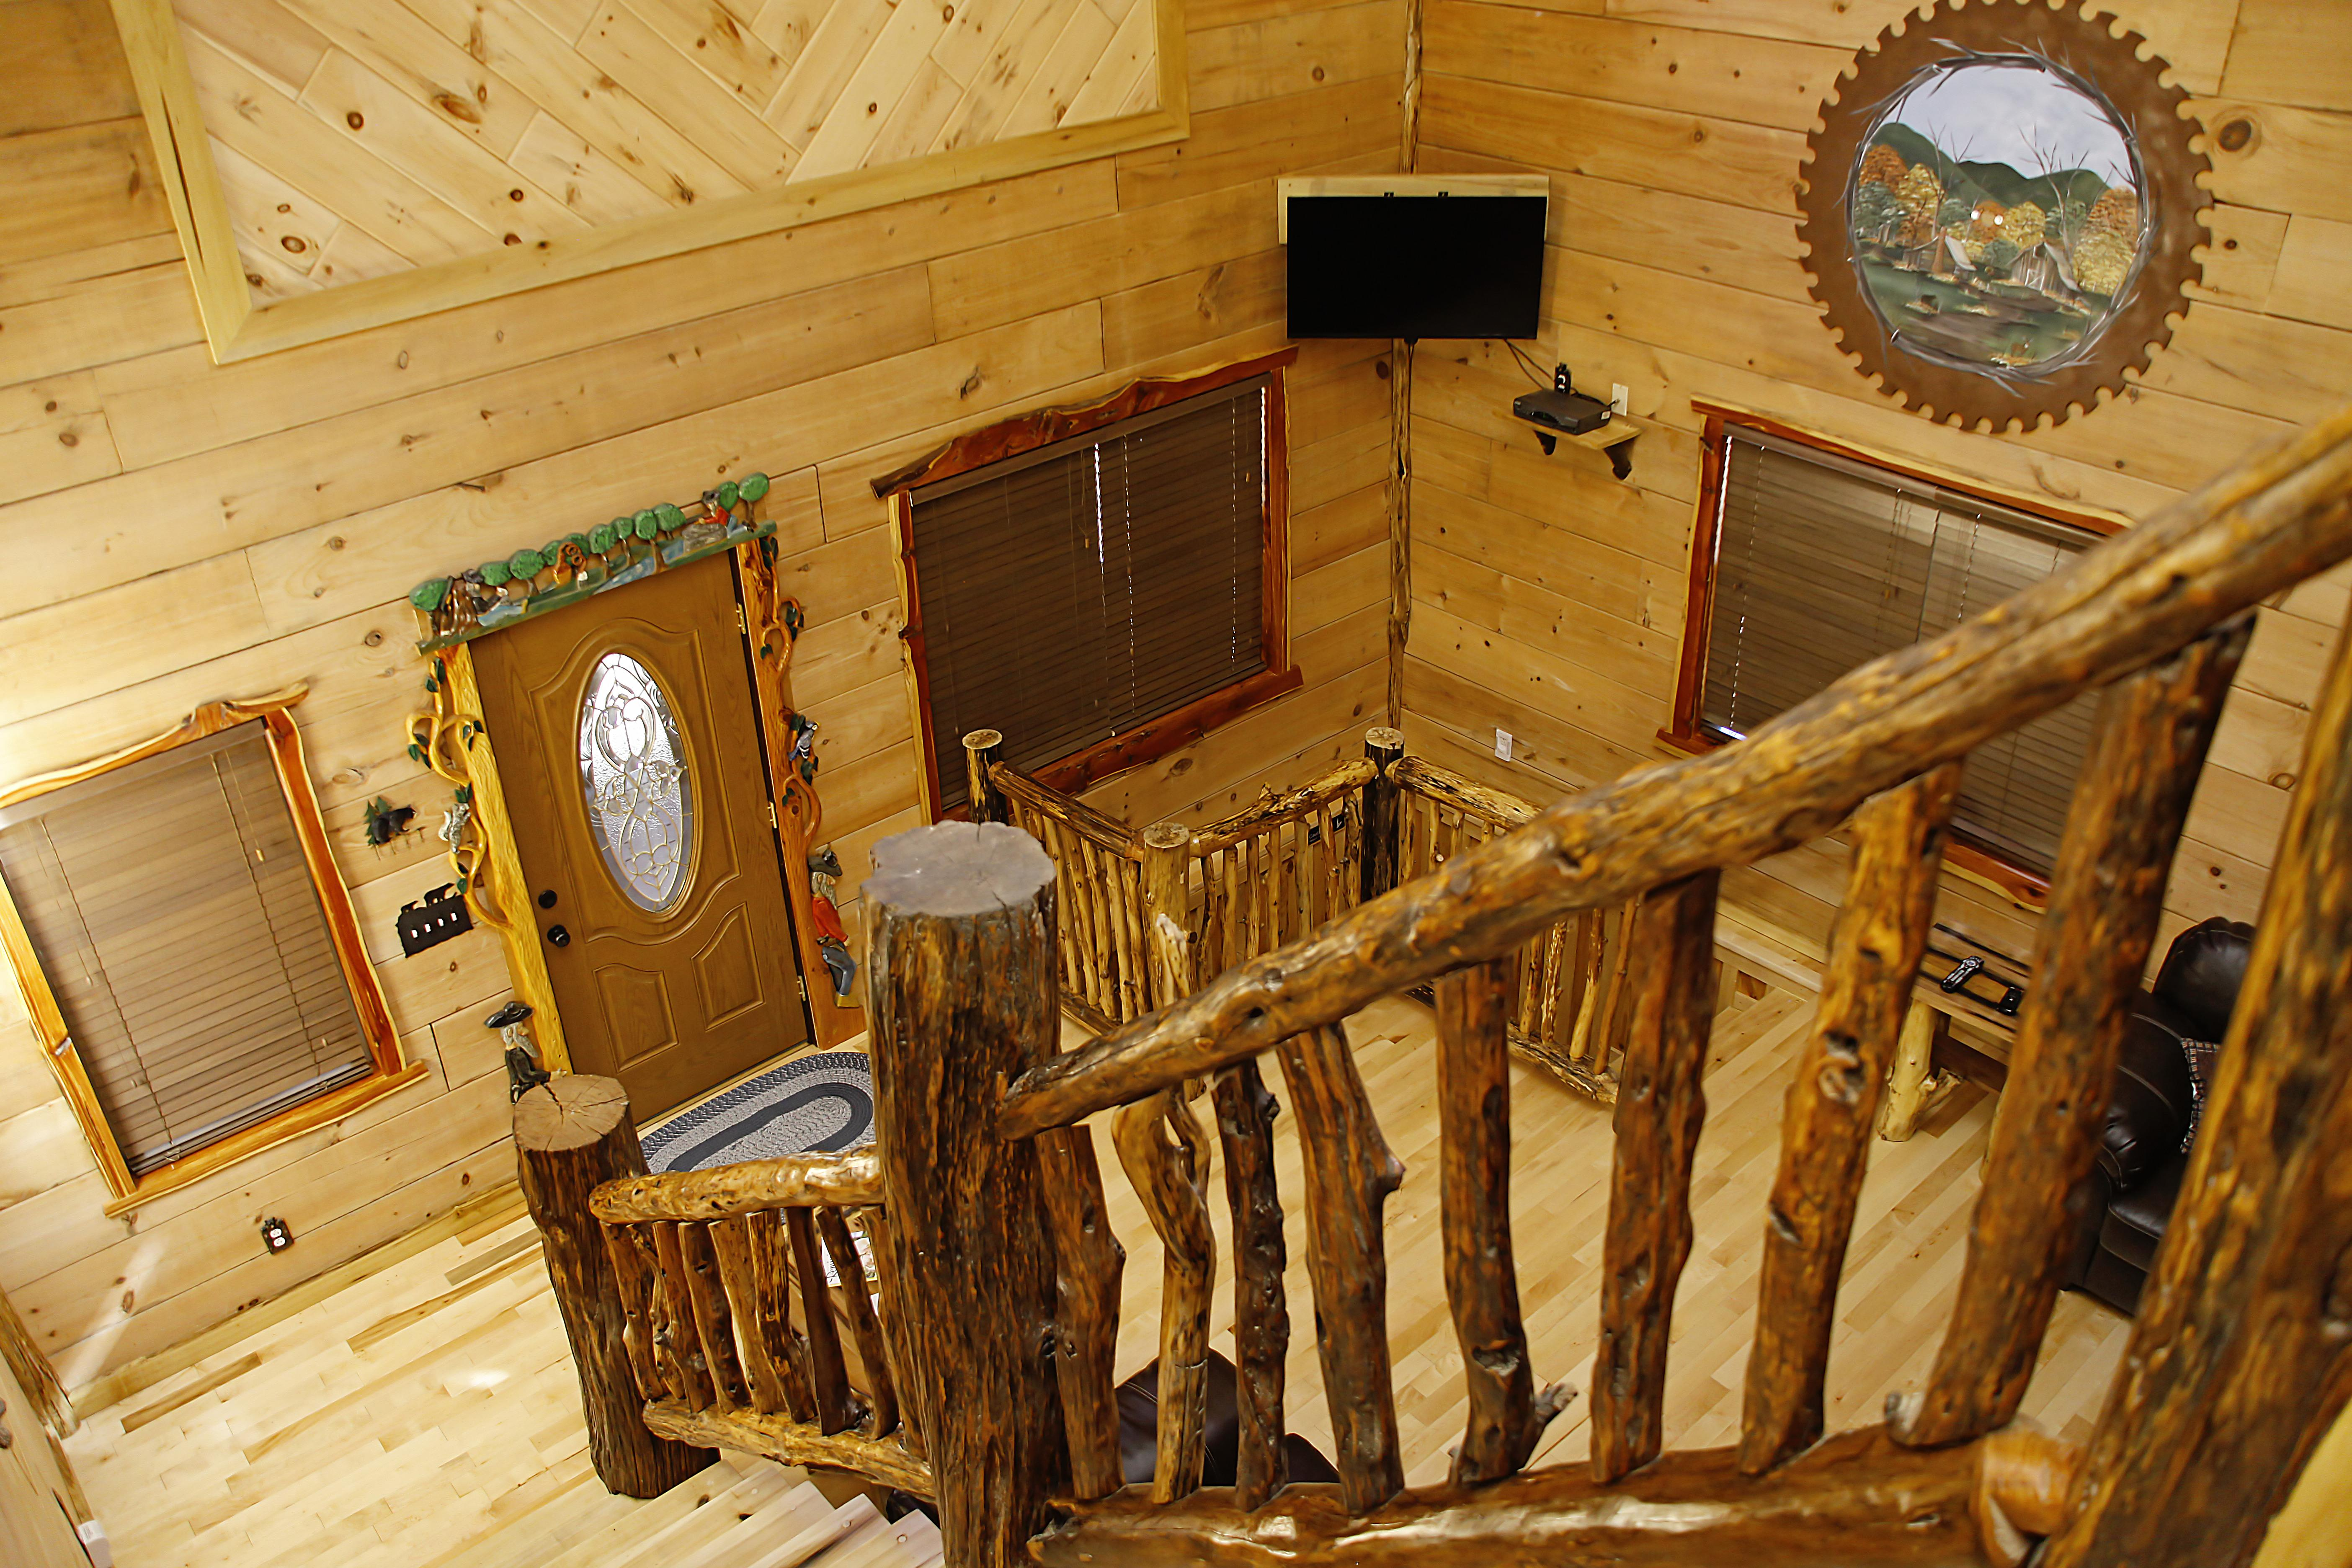 pin cabin you with our hot cabins tub honeymoon wv us located in to let luxury welcome rentals